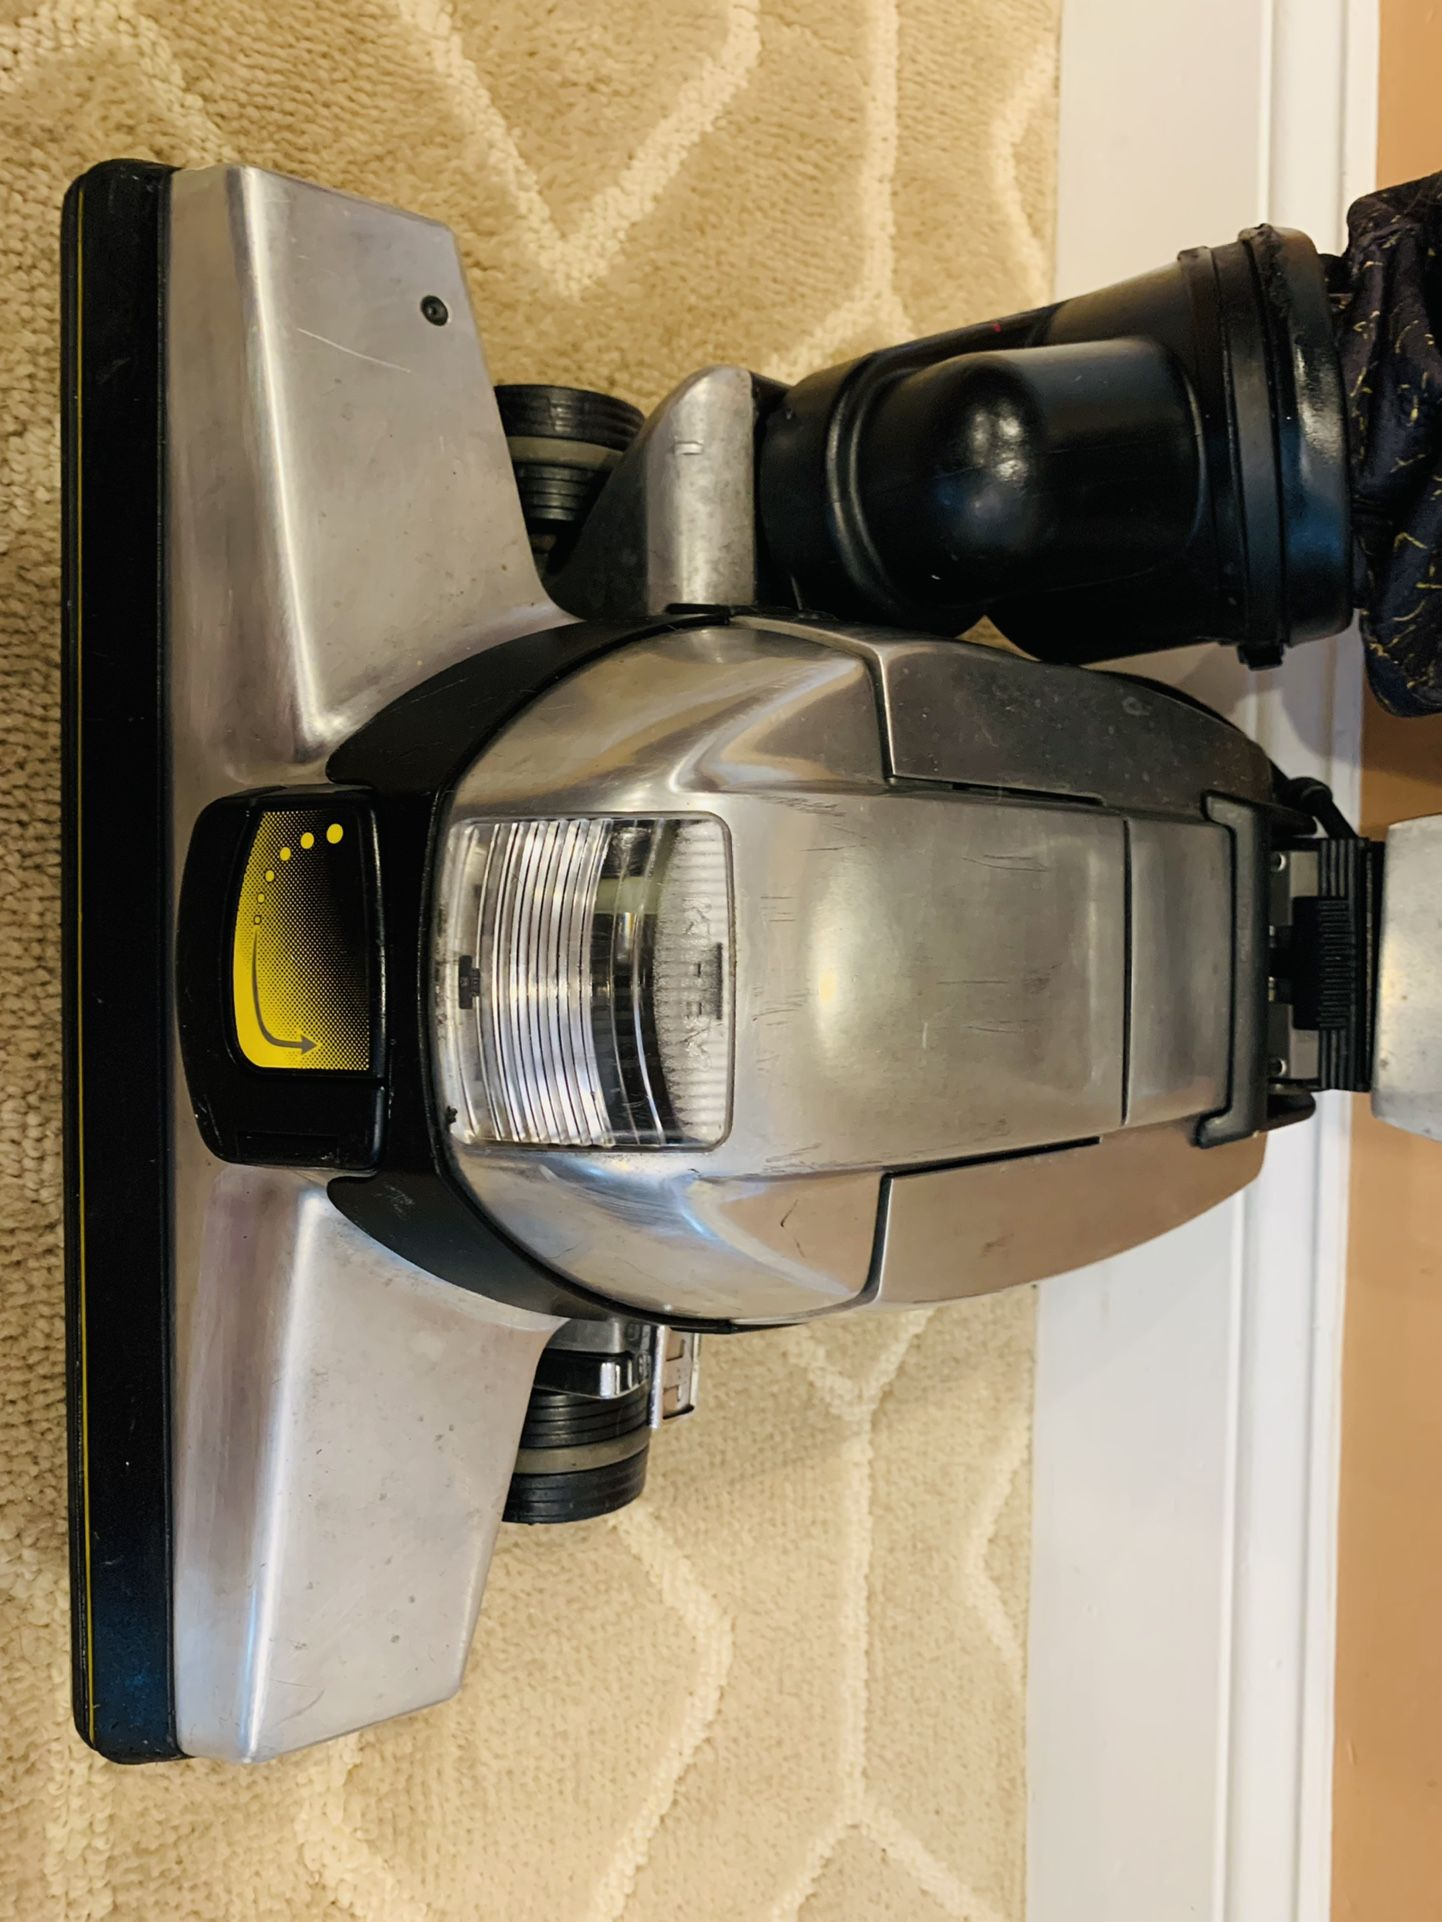 Kirby G6 vacuum cleaner with attachments and shampooer